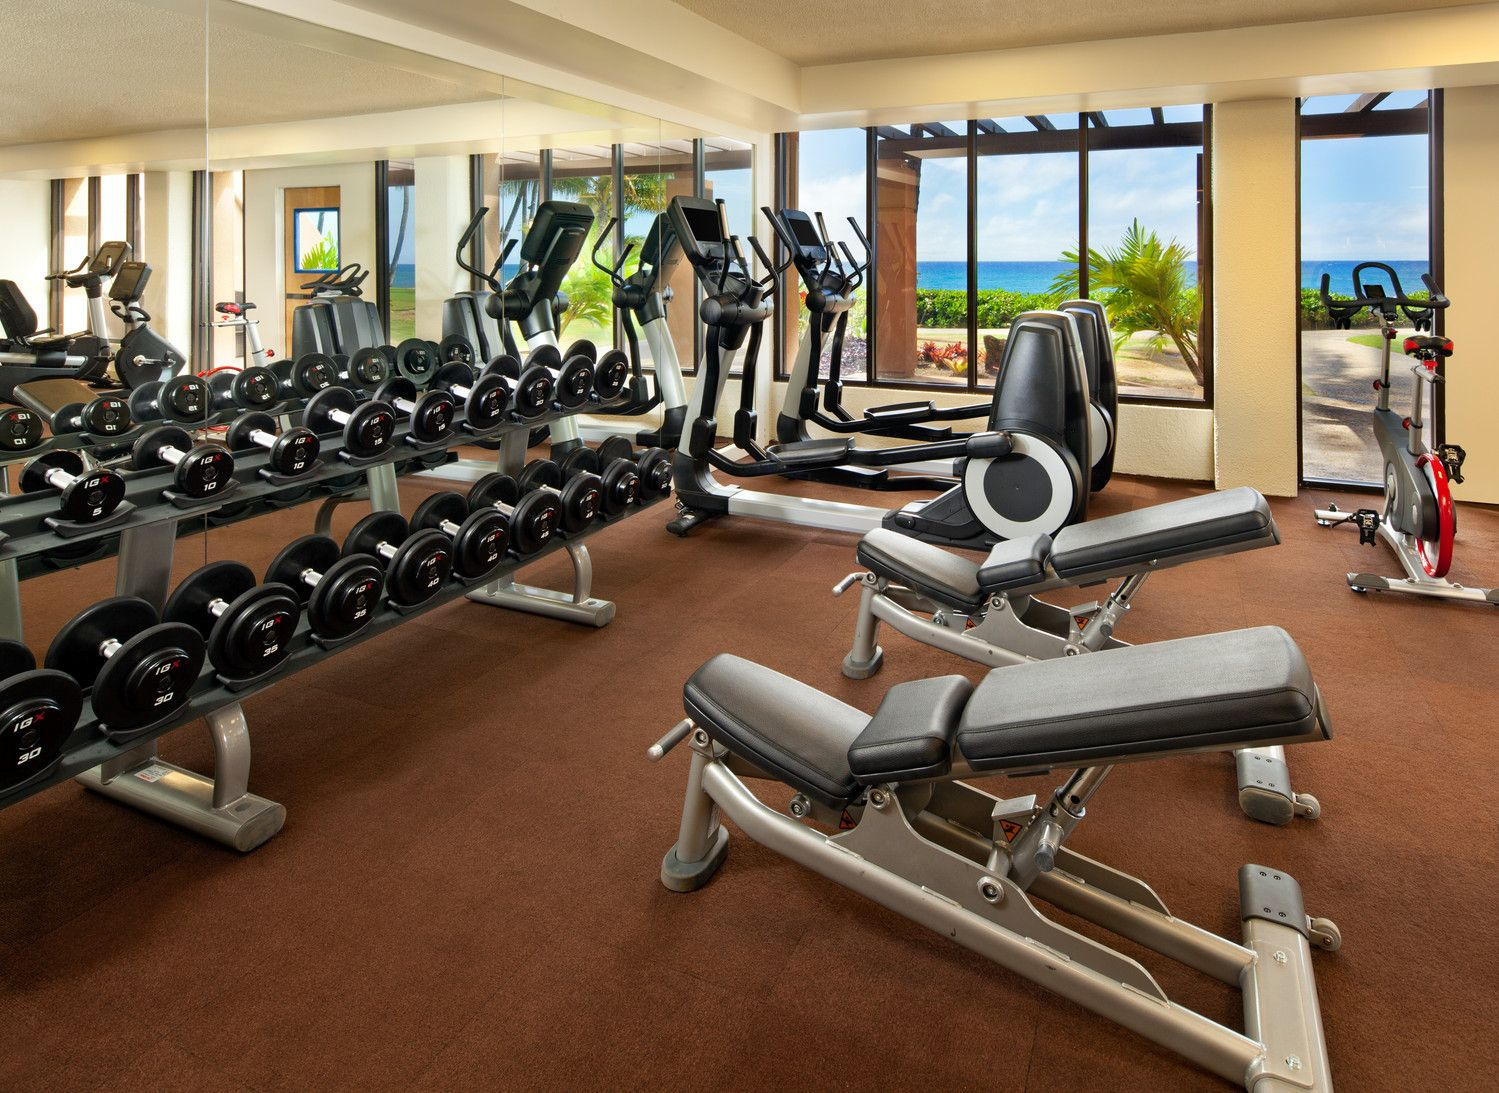 Poipu Beach Hotels - Fitness Center